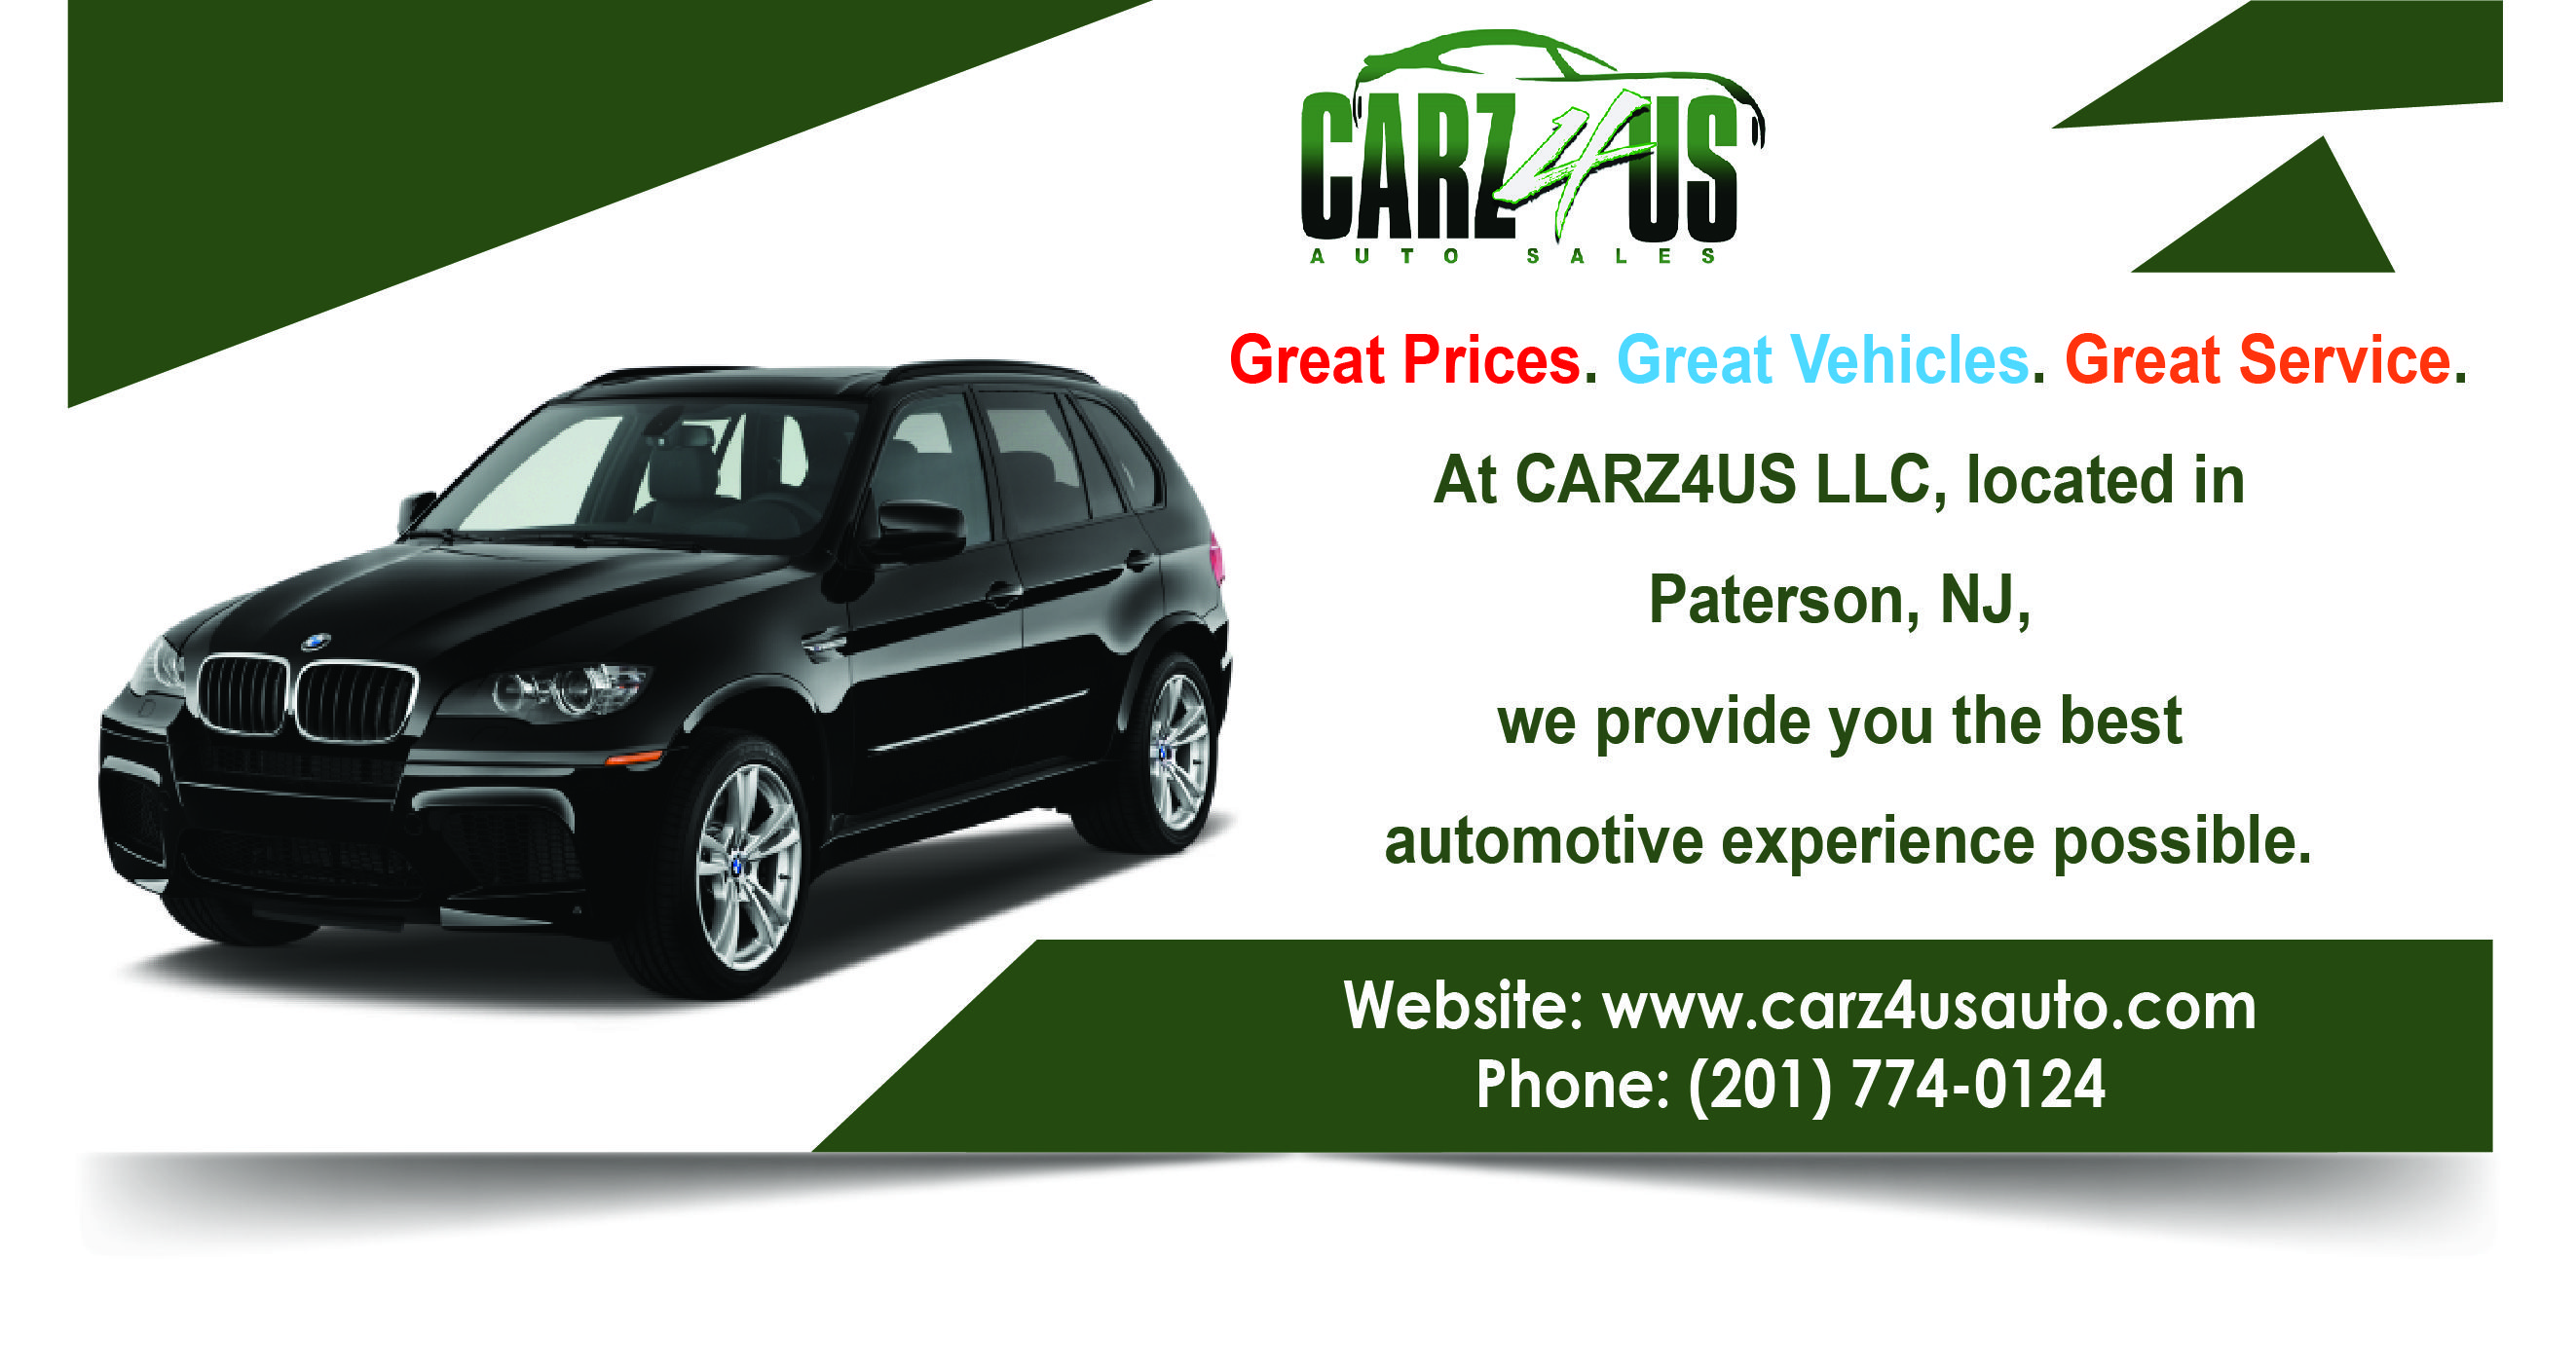 9 Used Cars Ideas Used Cars Cars Cars For Sale